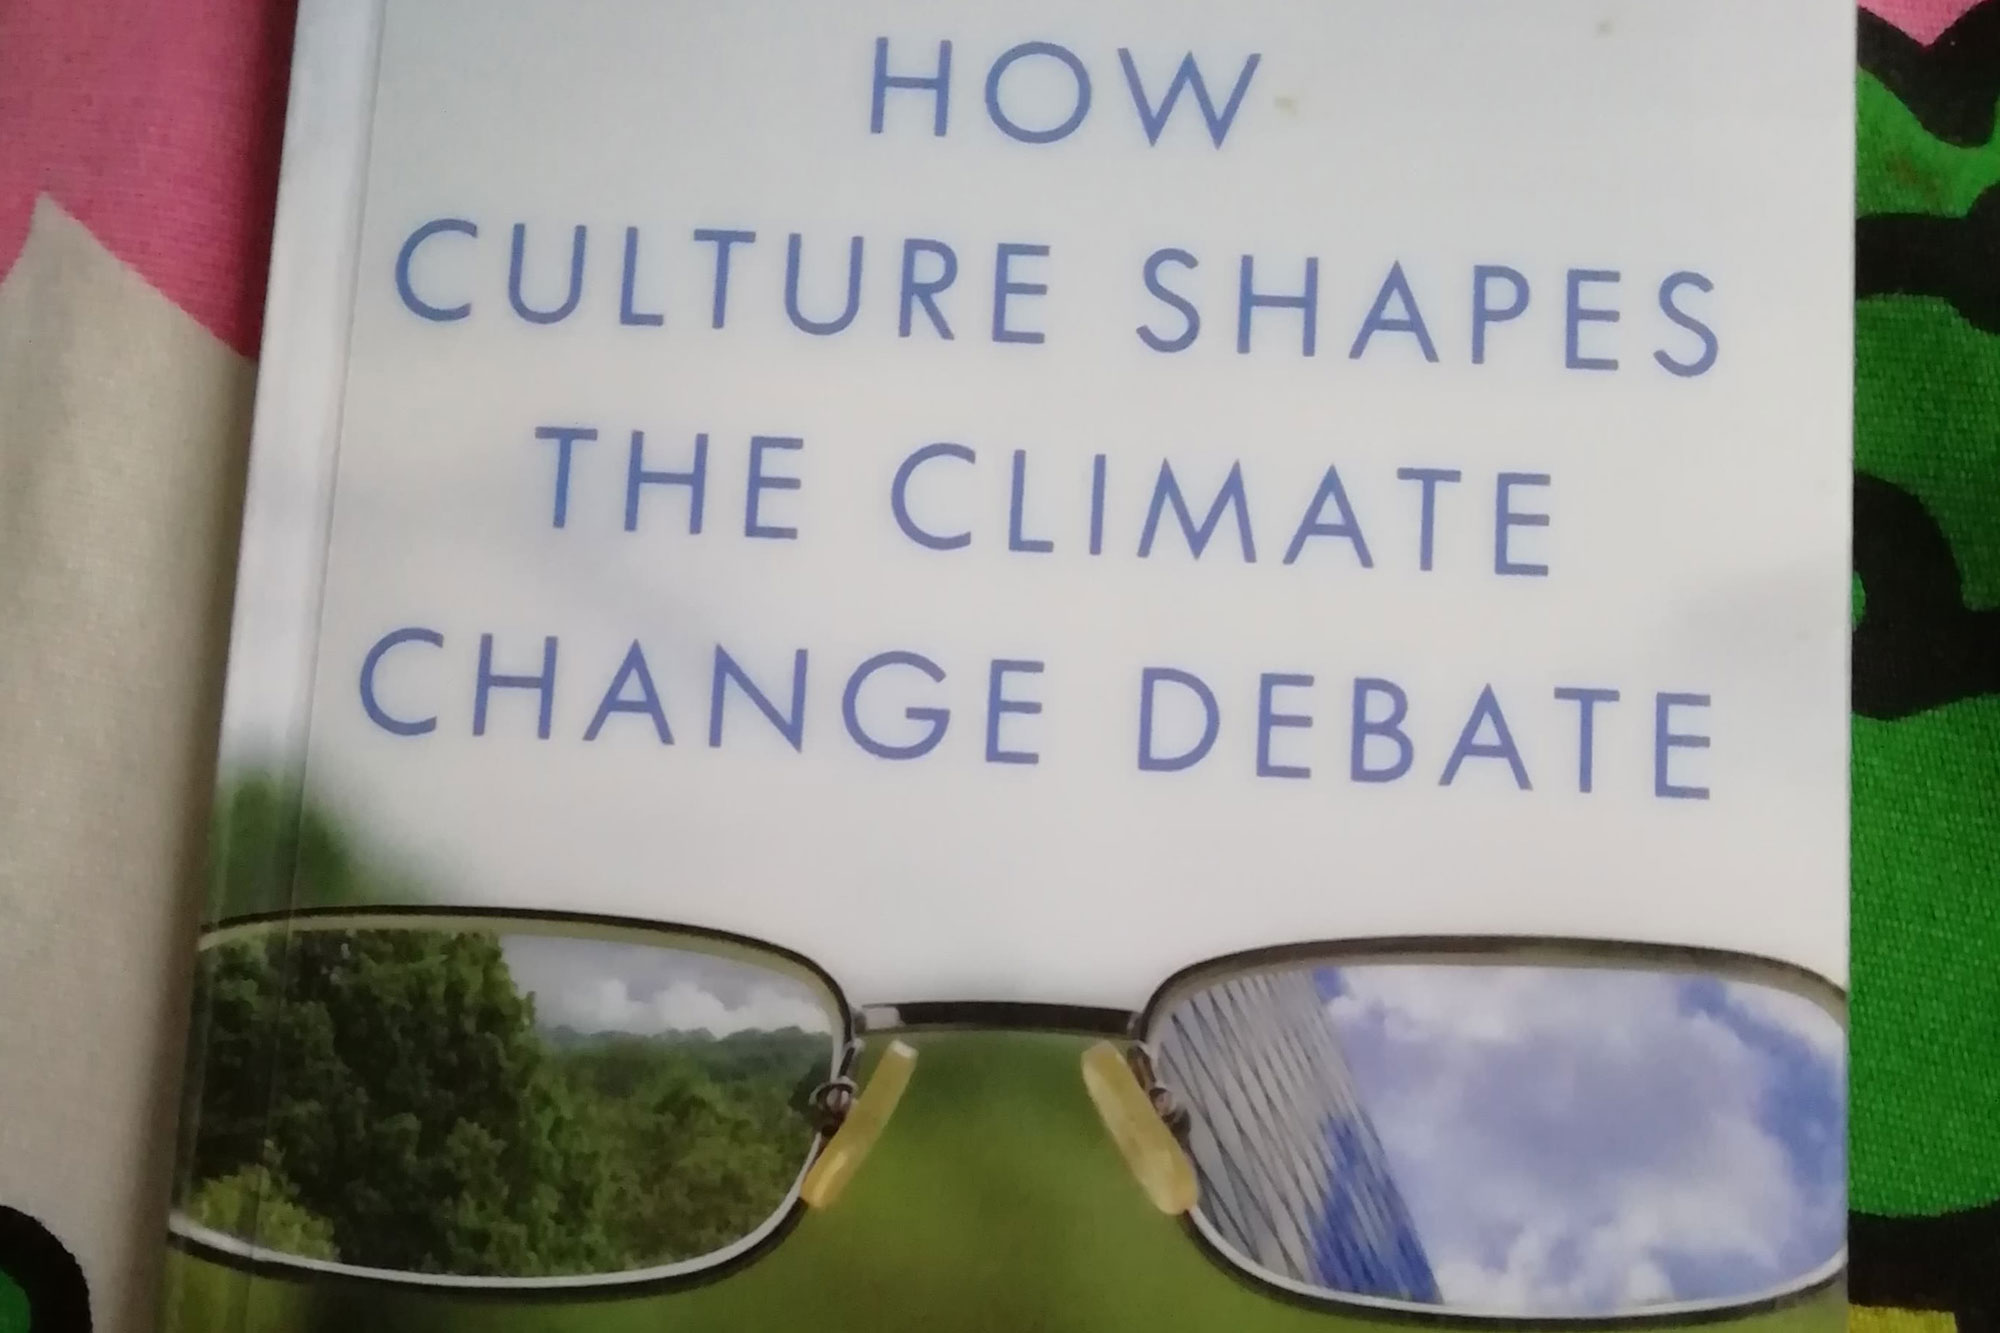 How Culture Shapes The Climate Change Debate by Andrew J. Hoffman front cover